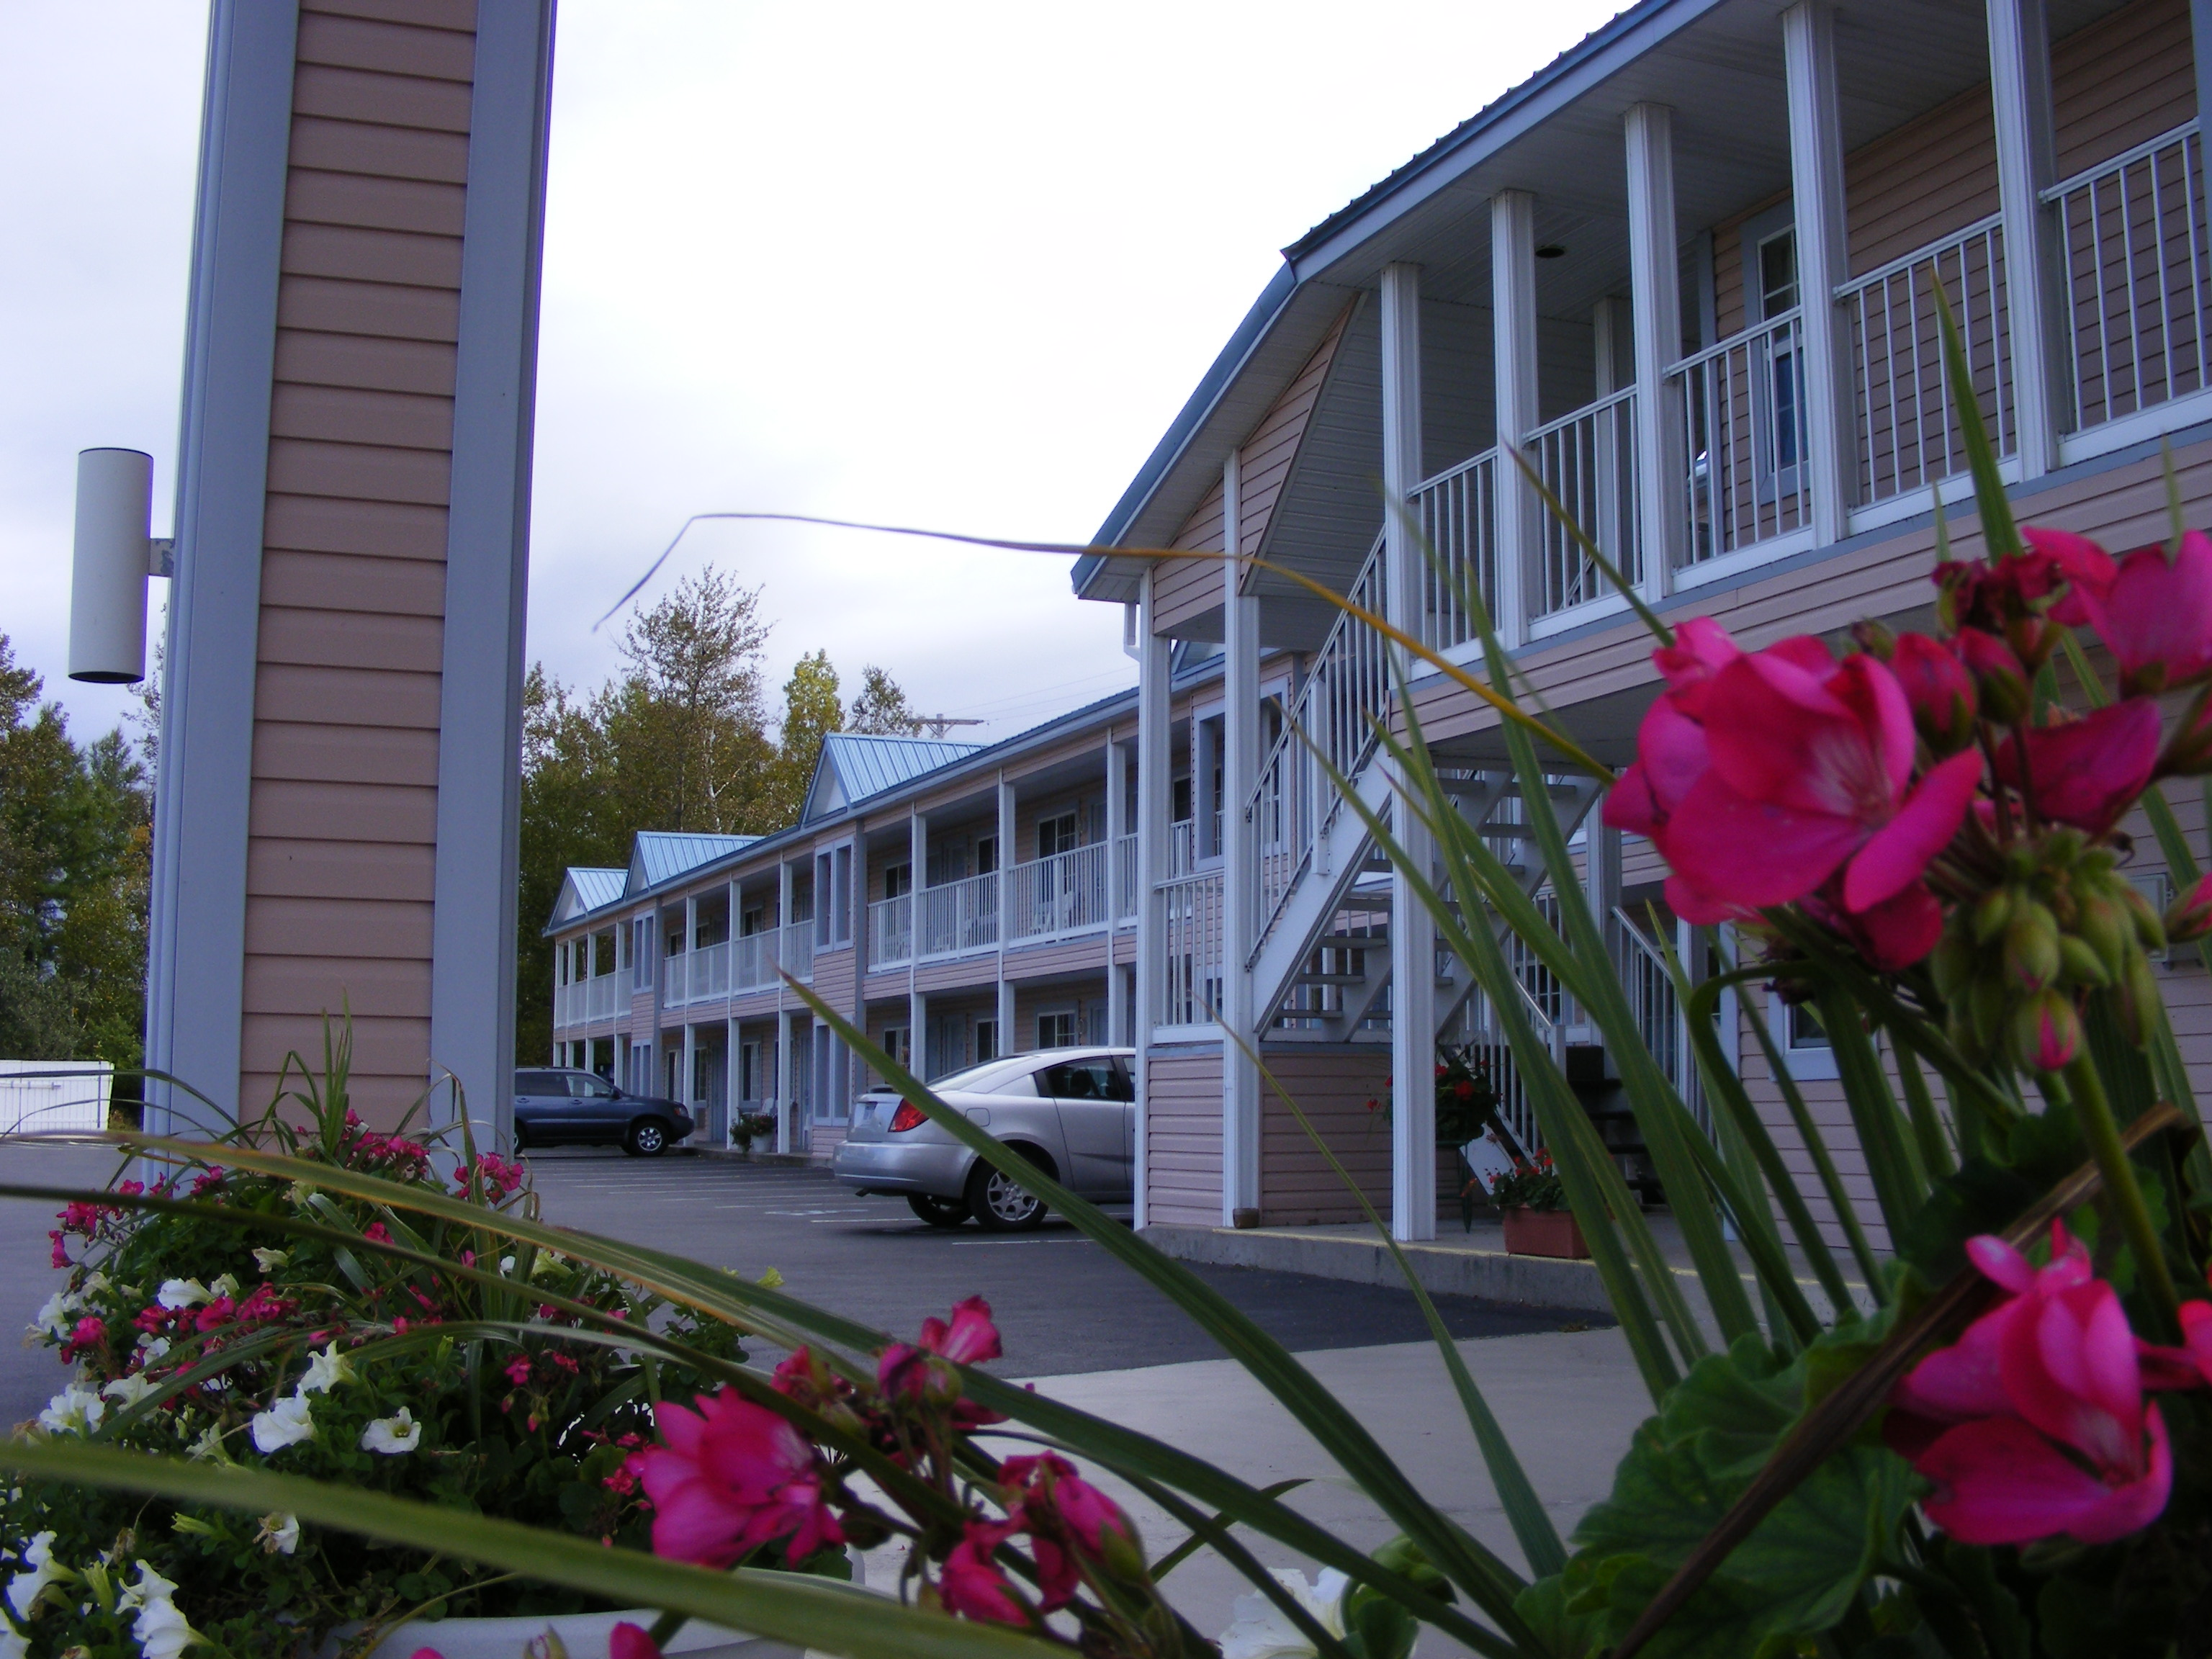 Great Lakes Inn Carport and Building